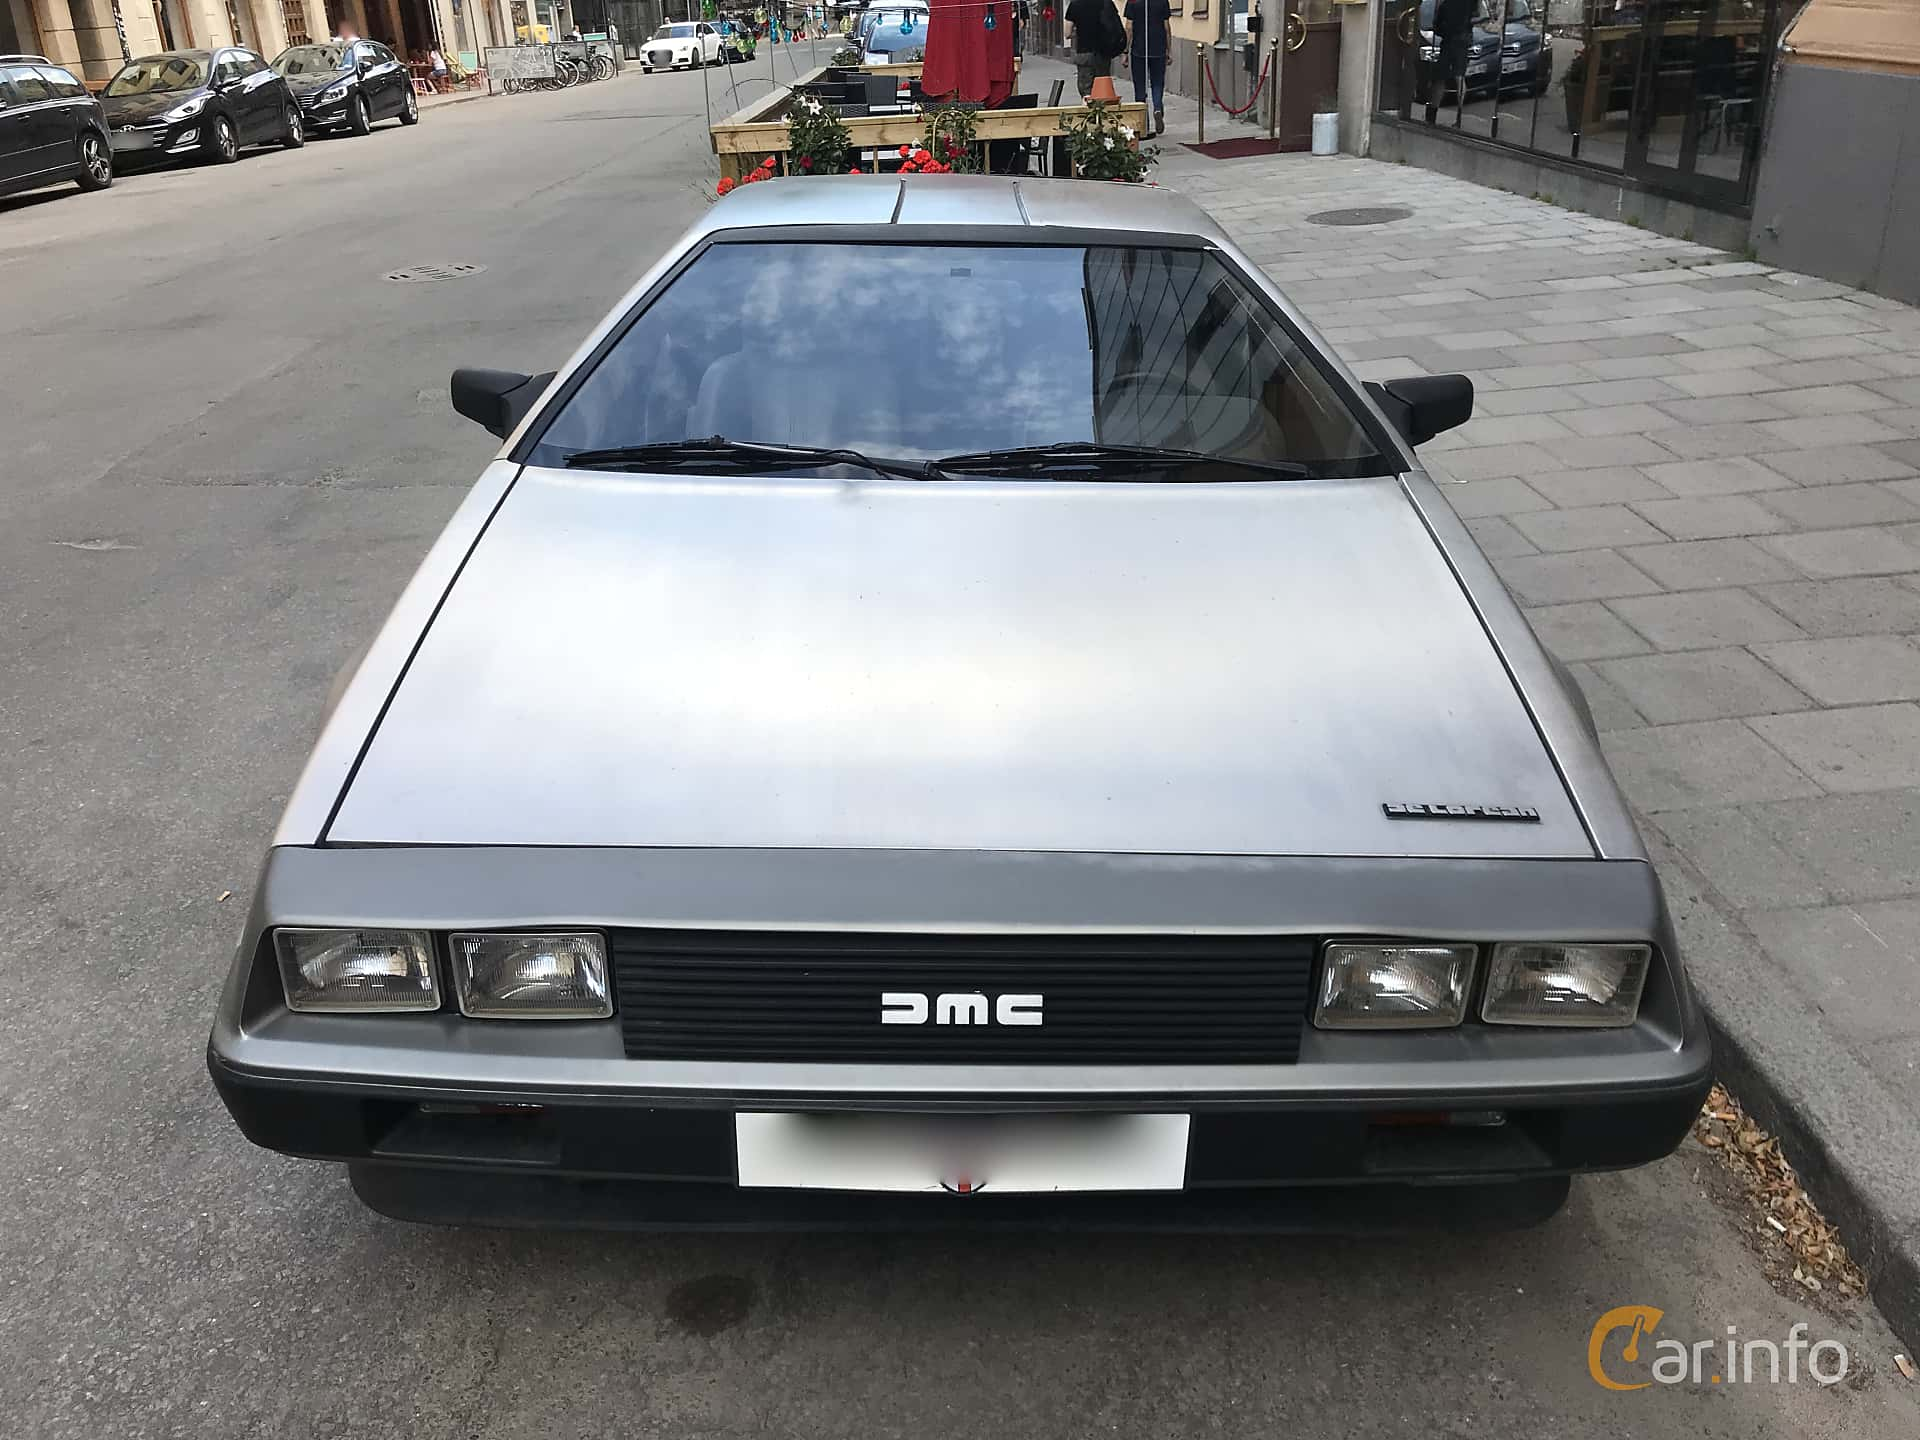 Front  of DeLorean DMC-12 2.8 V6 Automatic, 132ps, 1982